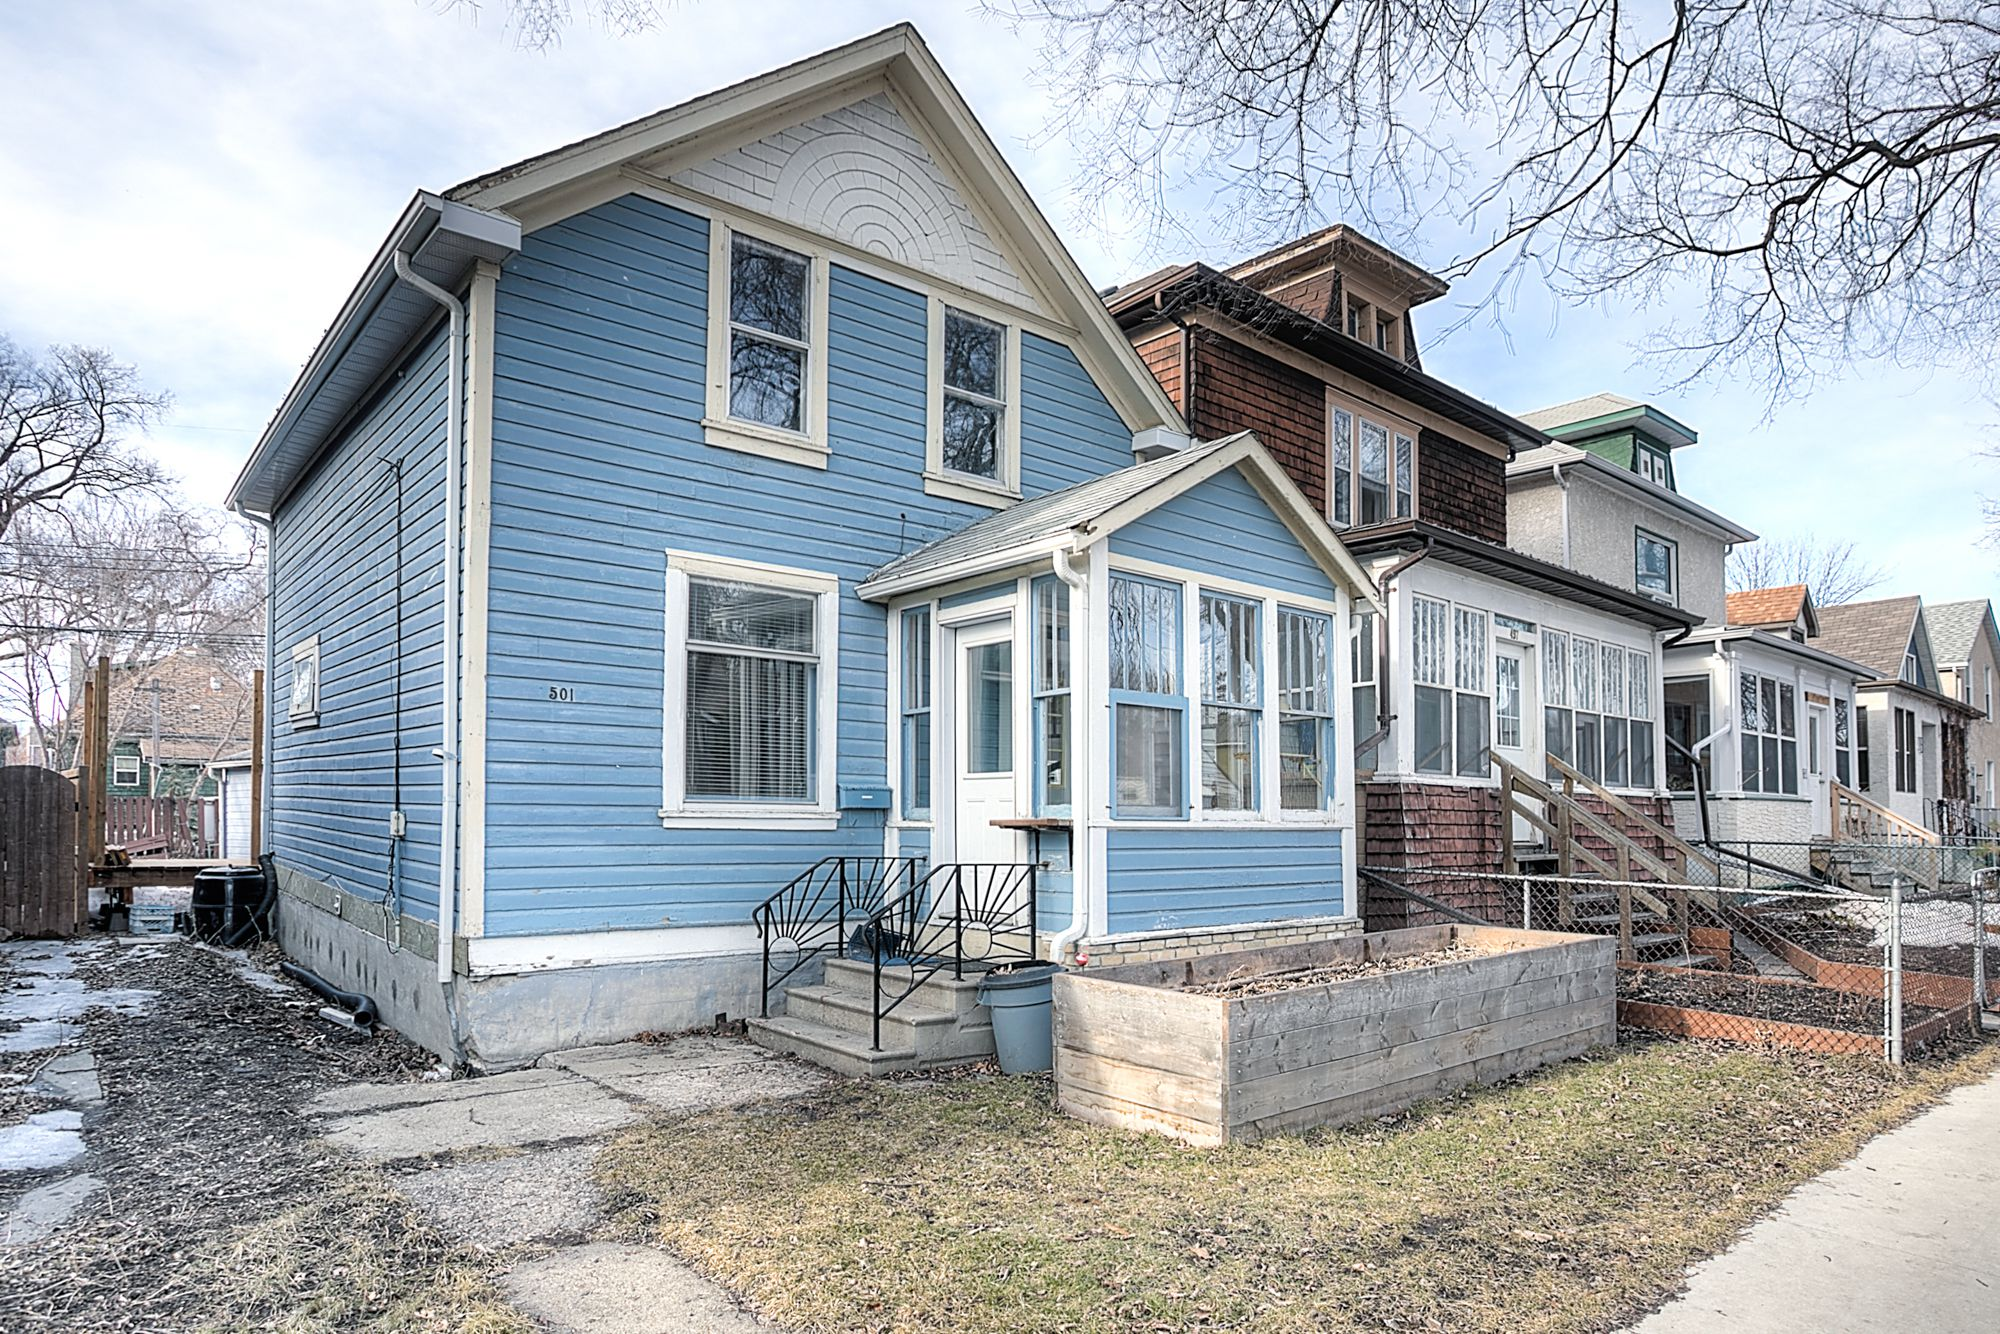 Main Photo: 501 Rathgar Avenue in Winnipeg: Lord Roberts Single Family Detached for sale (1Aw)  : MLS®# 1908482